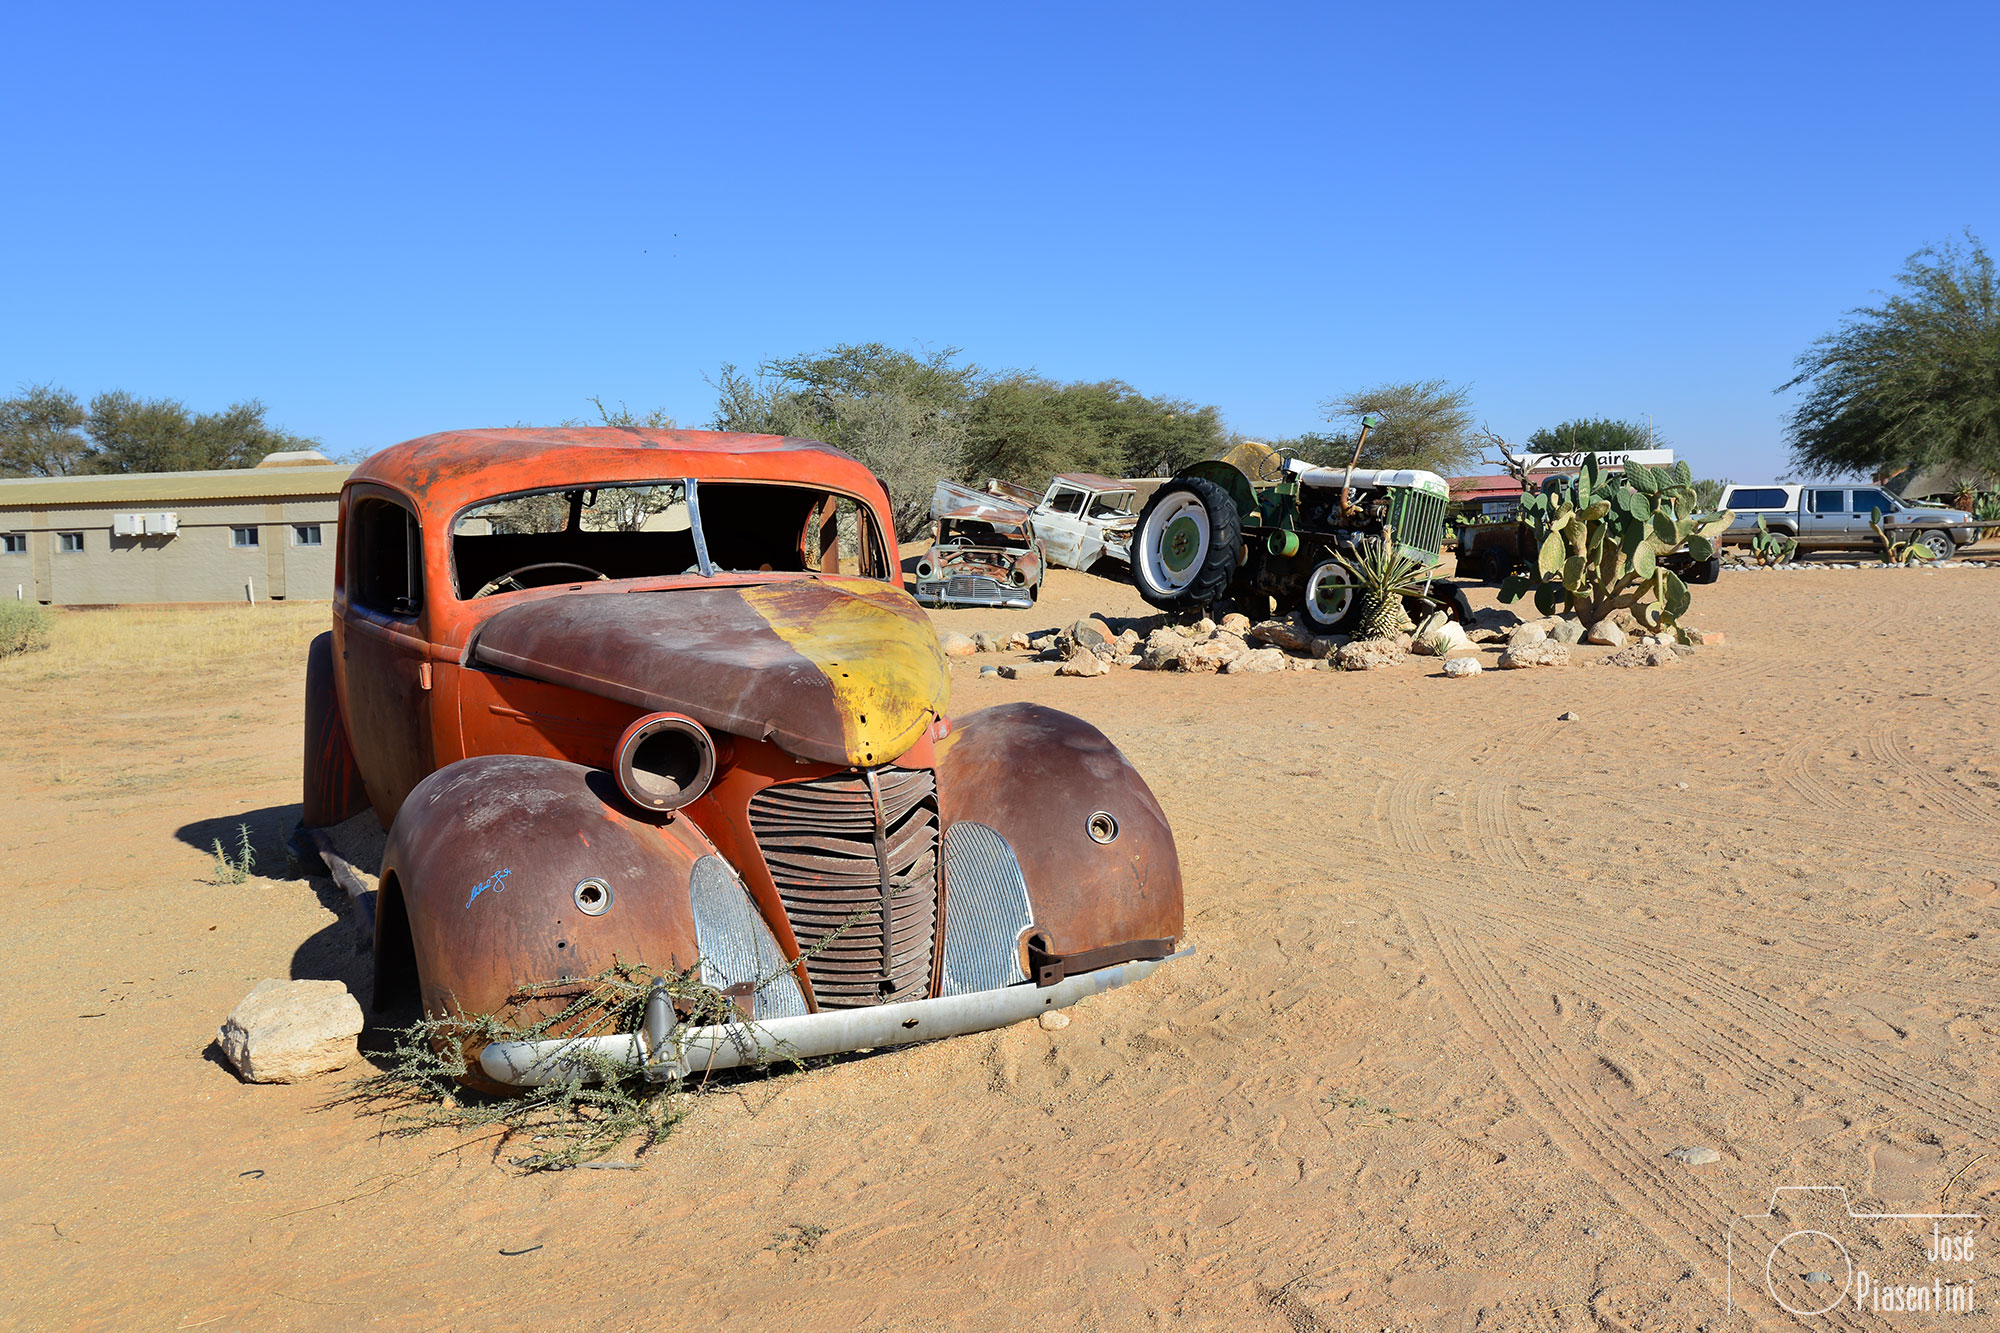 Crash-car-Solitaire-Namibia